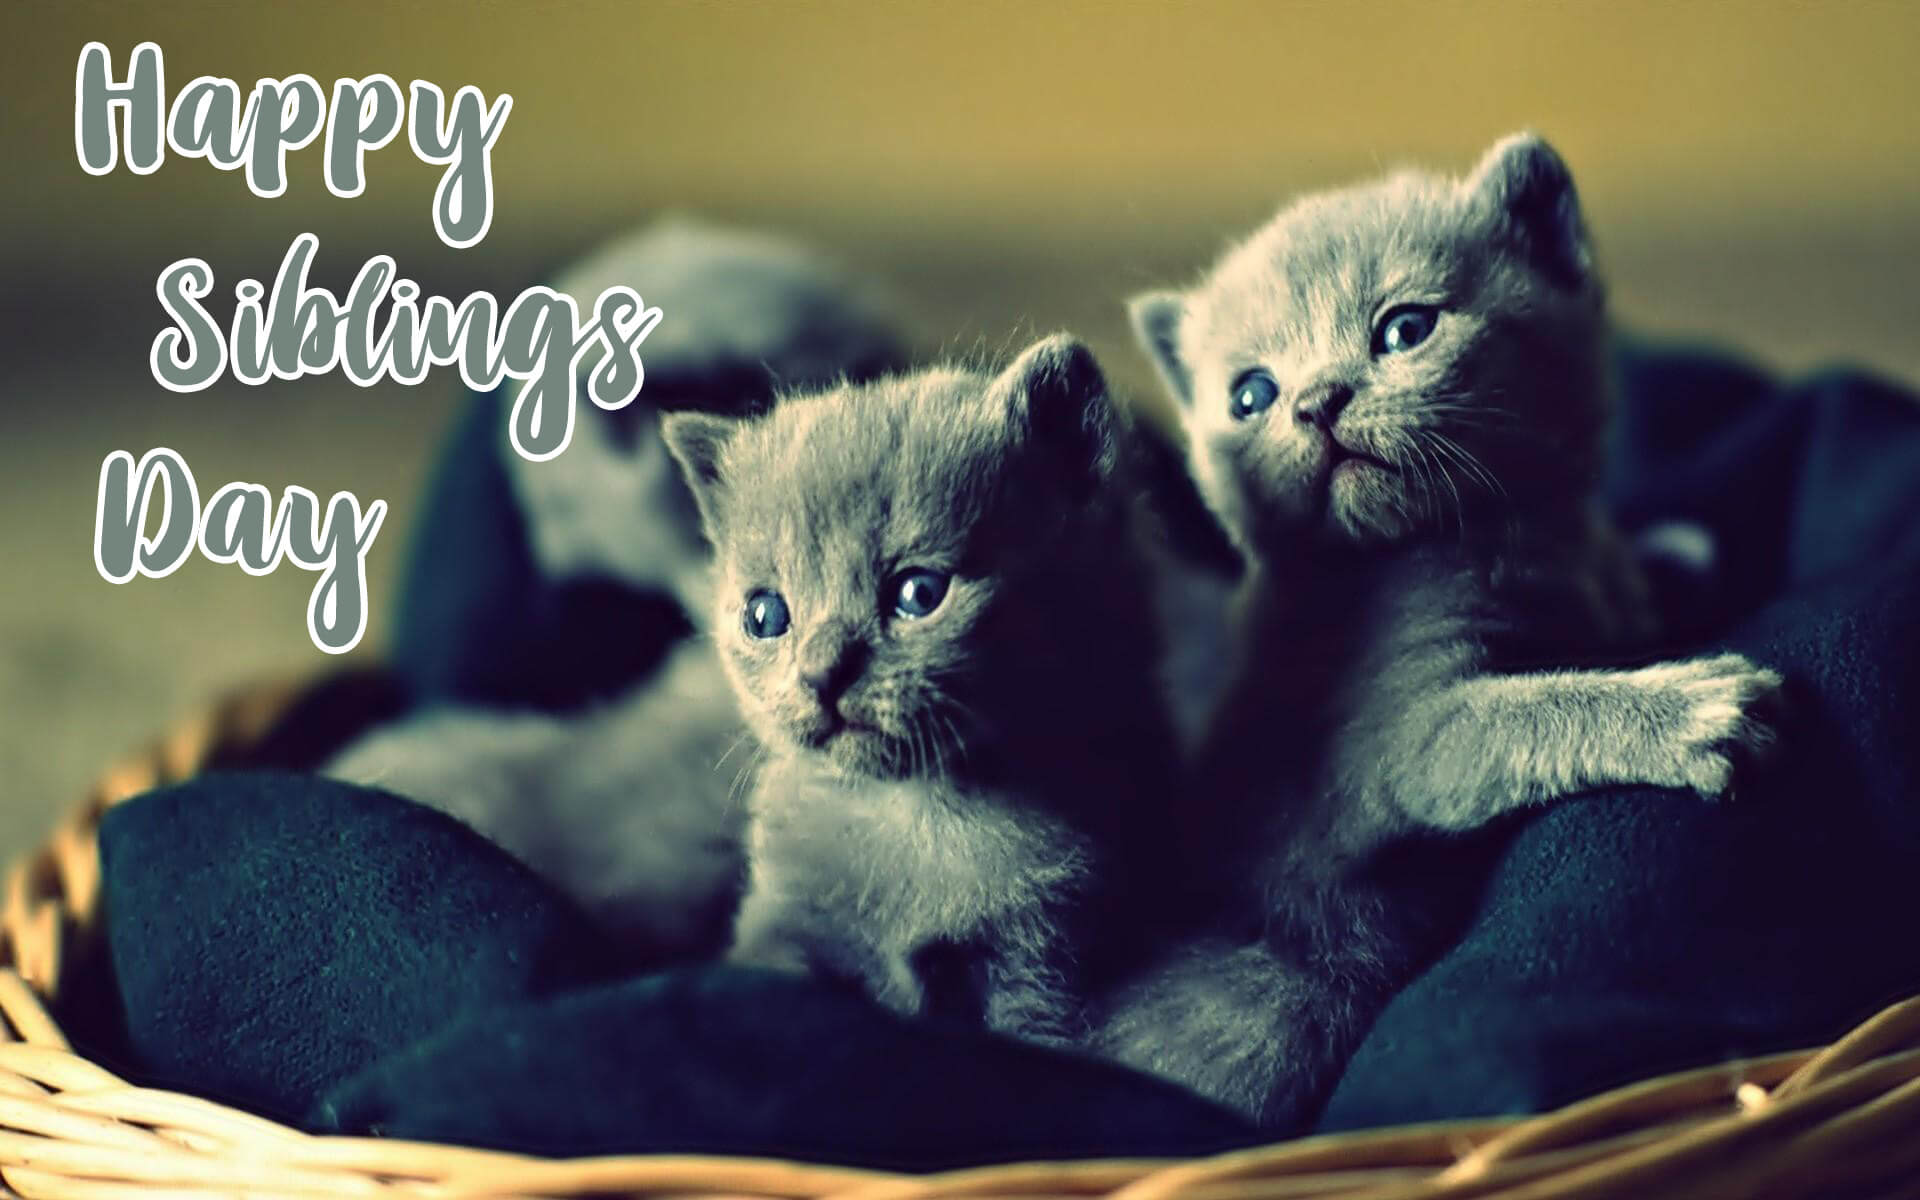 happy national siblings day two kittens cat in basket hd wallpaper